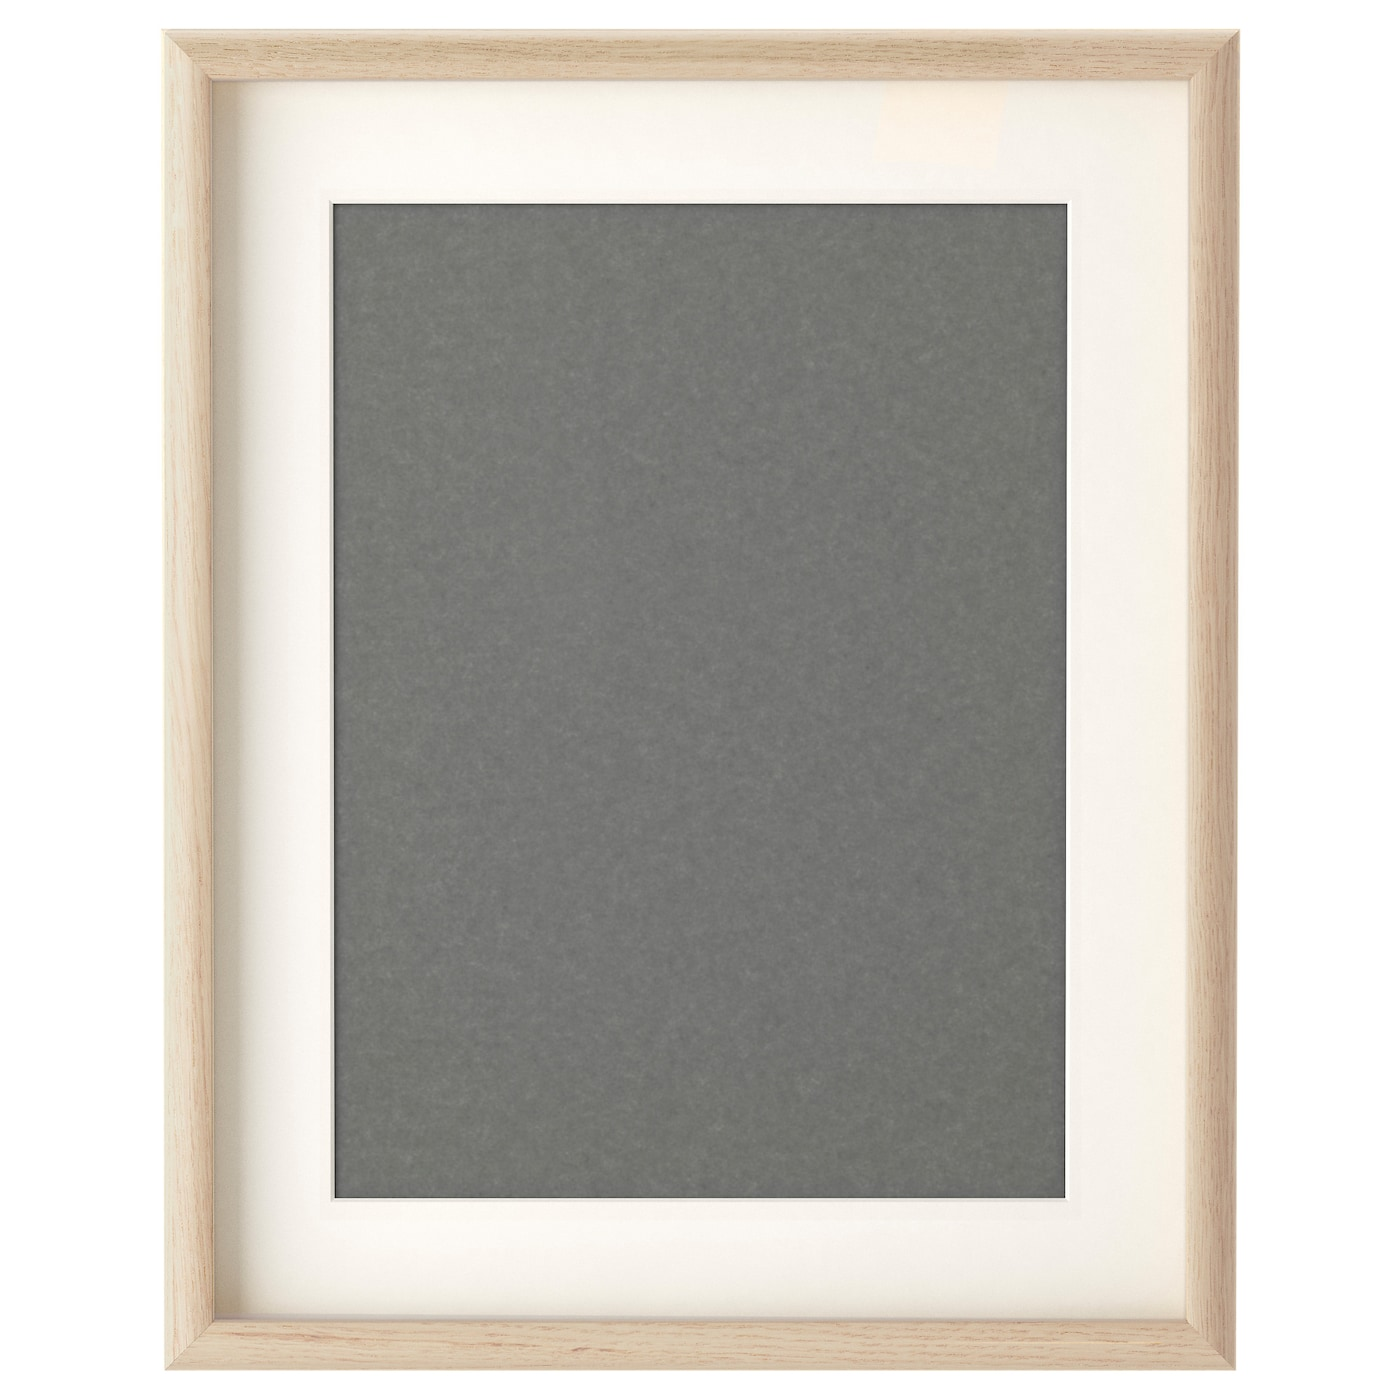 Mossebo frame white stained oak effect 40x50 cm ikea for Ikea picture holder